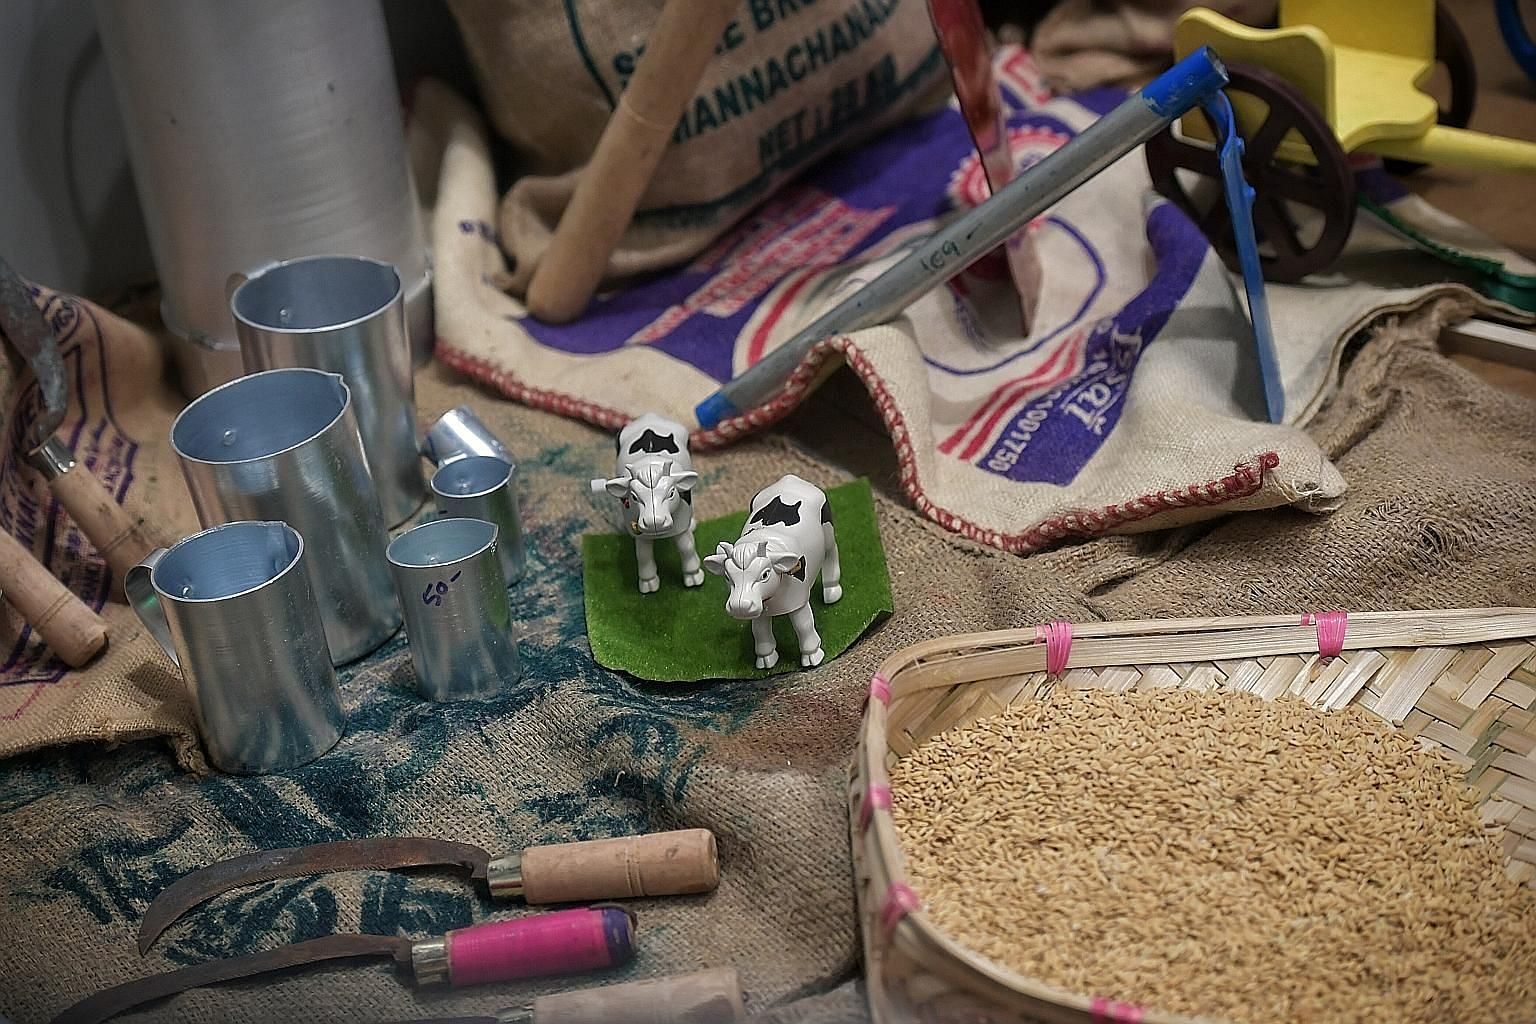 A display showing items significant to Pongal, a Tamil festival, at the Indian Heritage Centre. Pongal, which is celebrated in Singapore from Jan 15 to 17, is named after a traditional sweet pudding cooked with cow's milk.